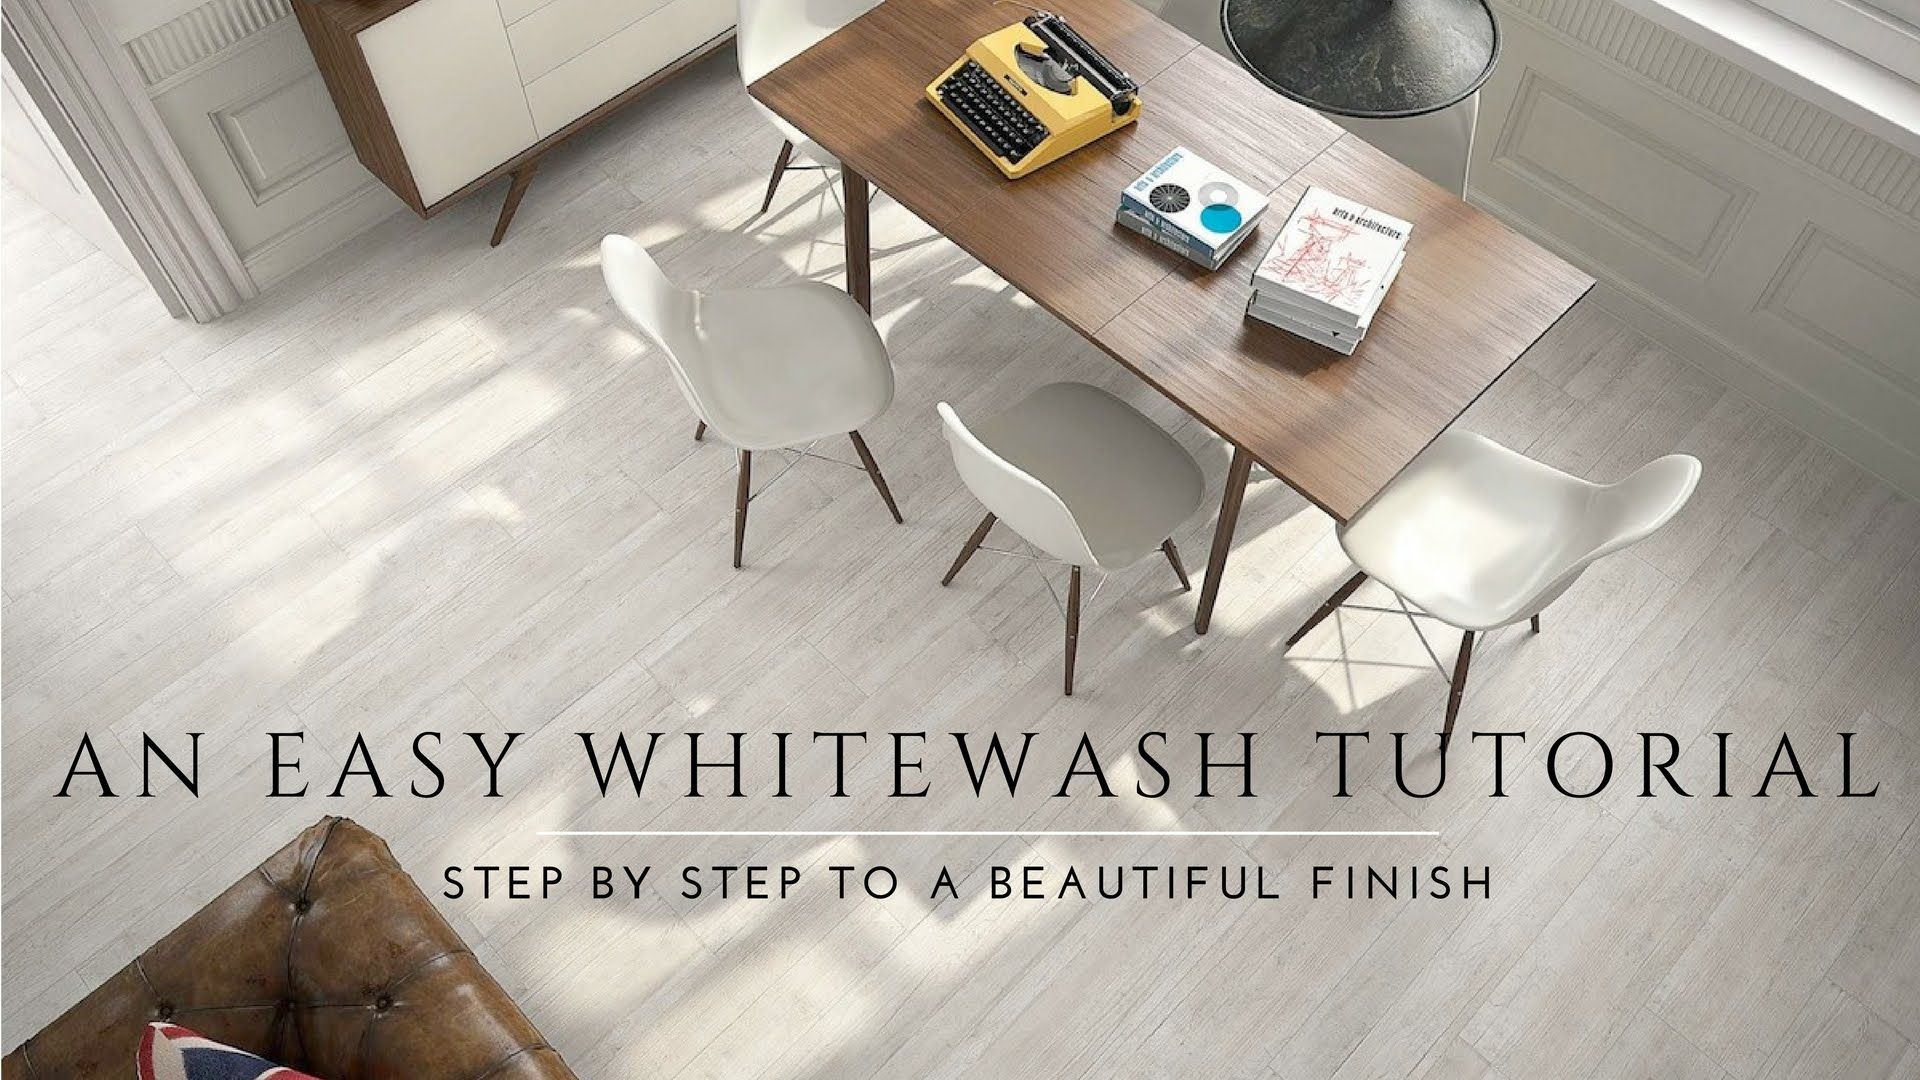 How to whitewash and seal a wood floor diy steps milk paint how to whitewash and seal a wood floor diy steps milk paint lime dailygadgetfo Choice Image